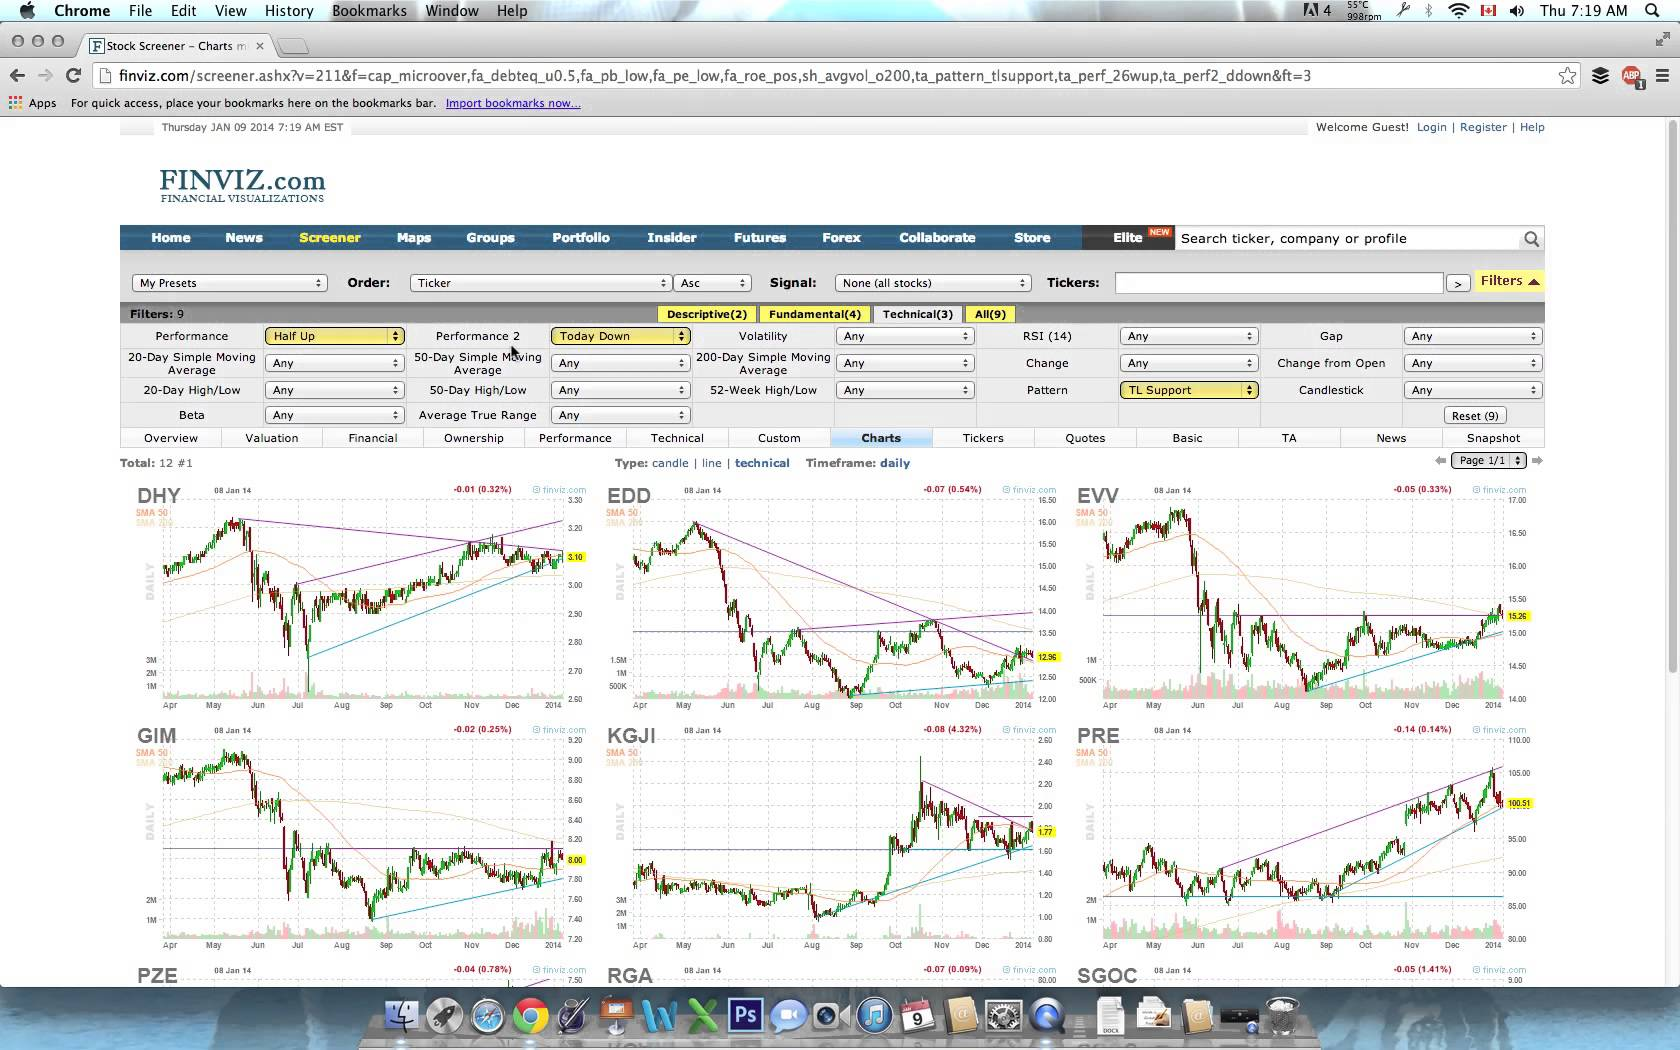 Best Swing Trading Stock Screen for 2014